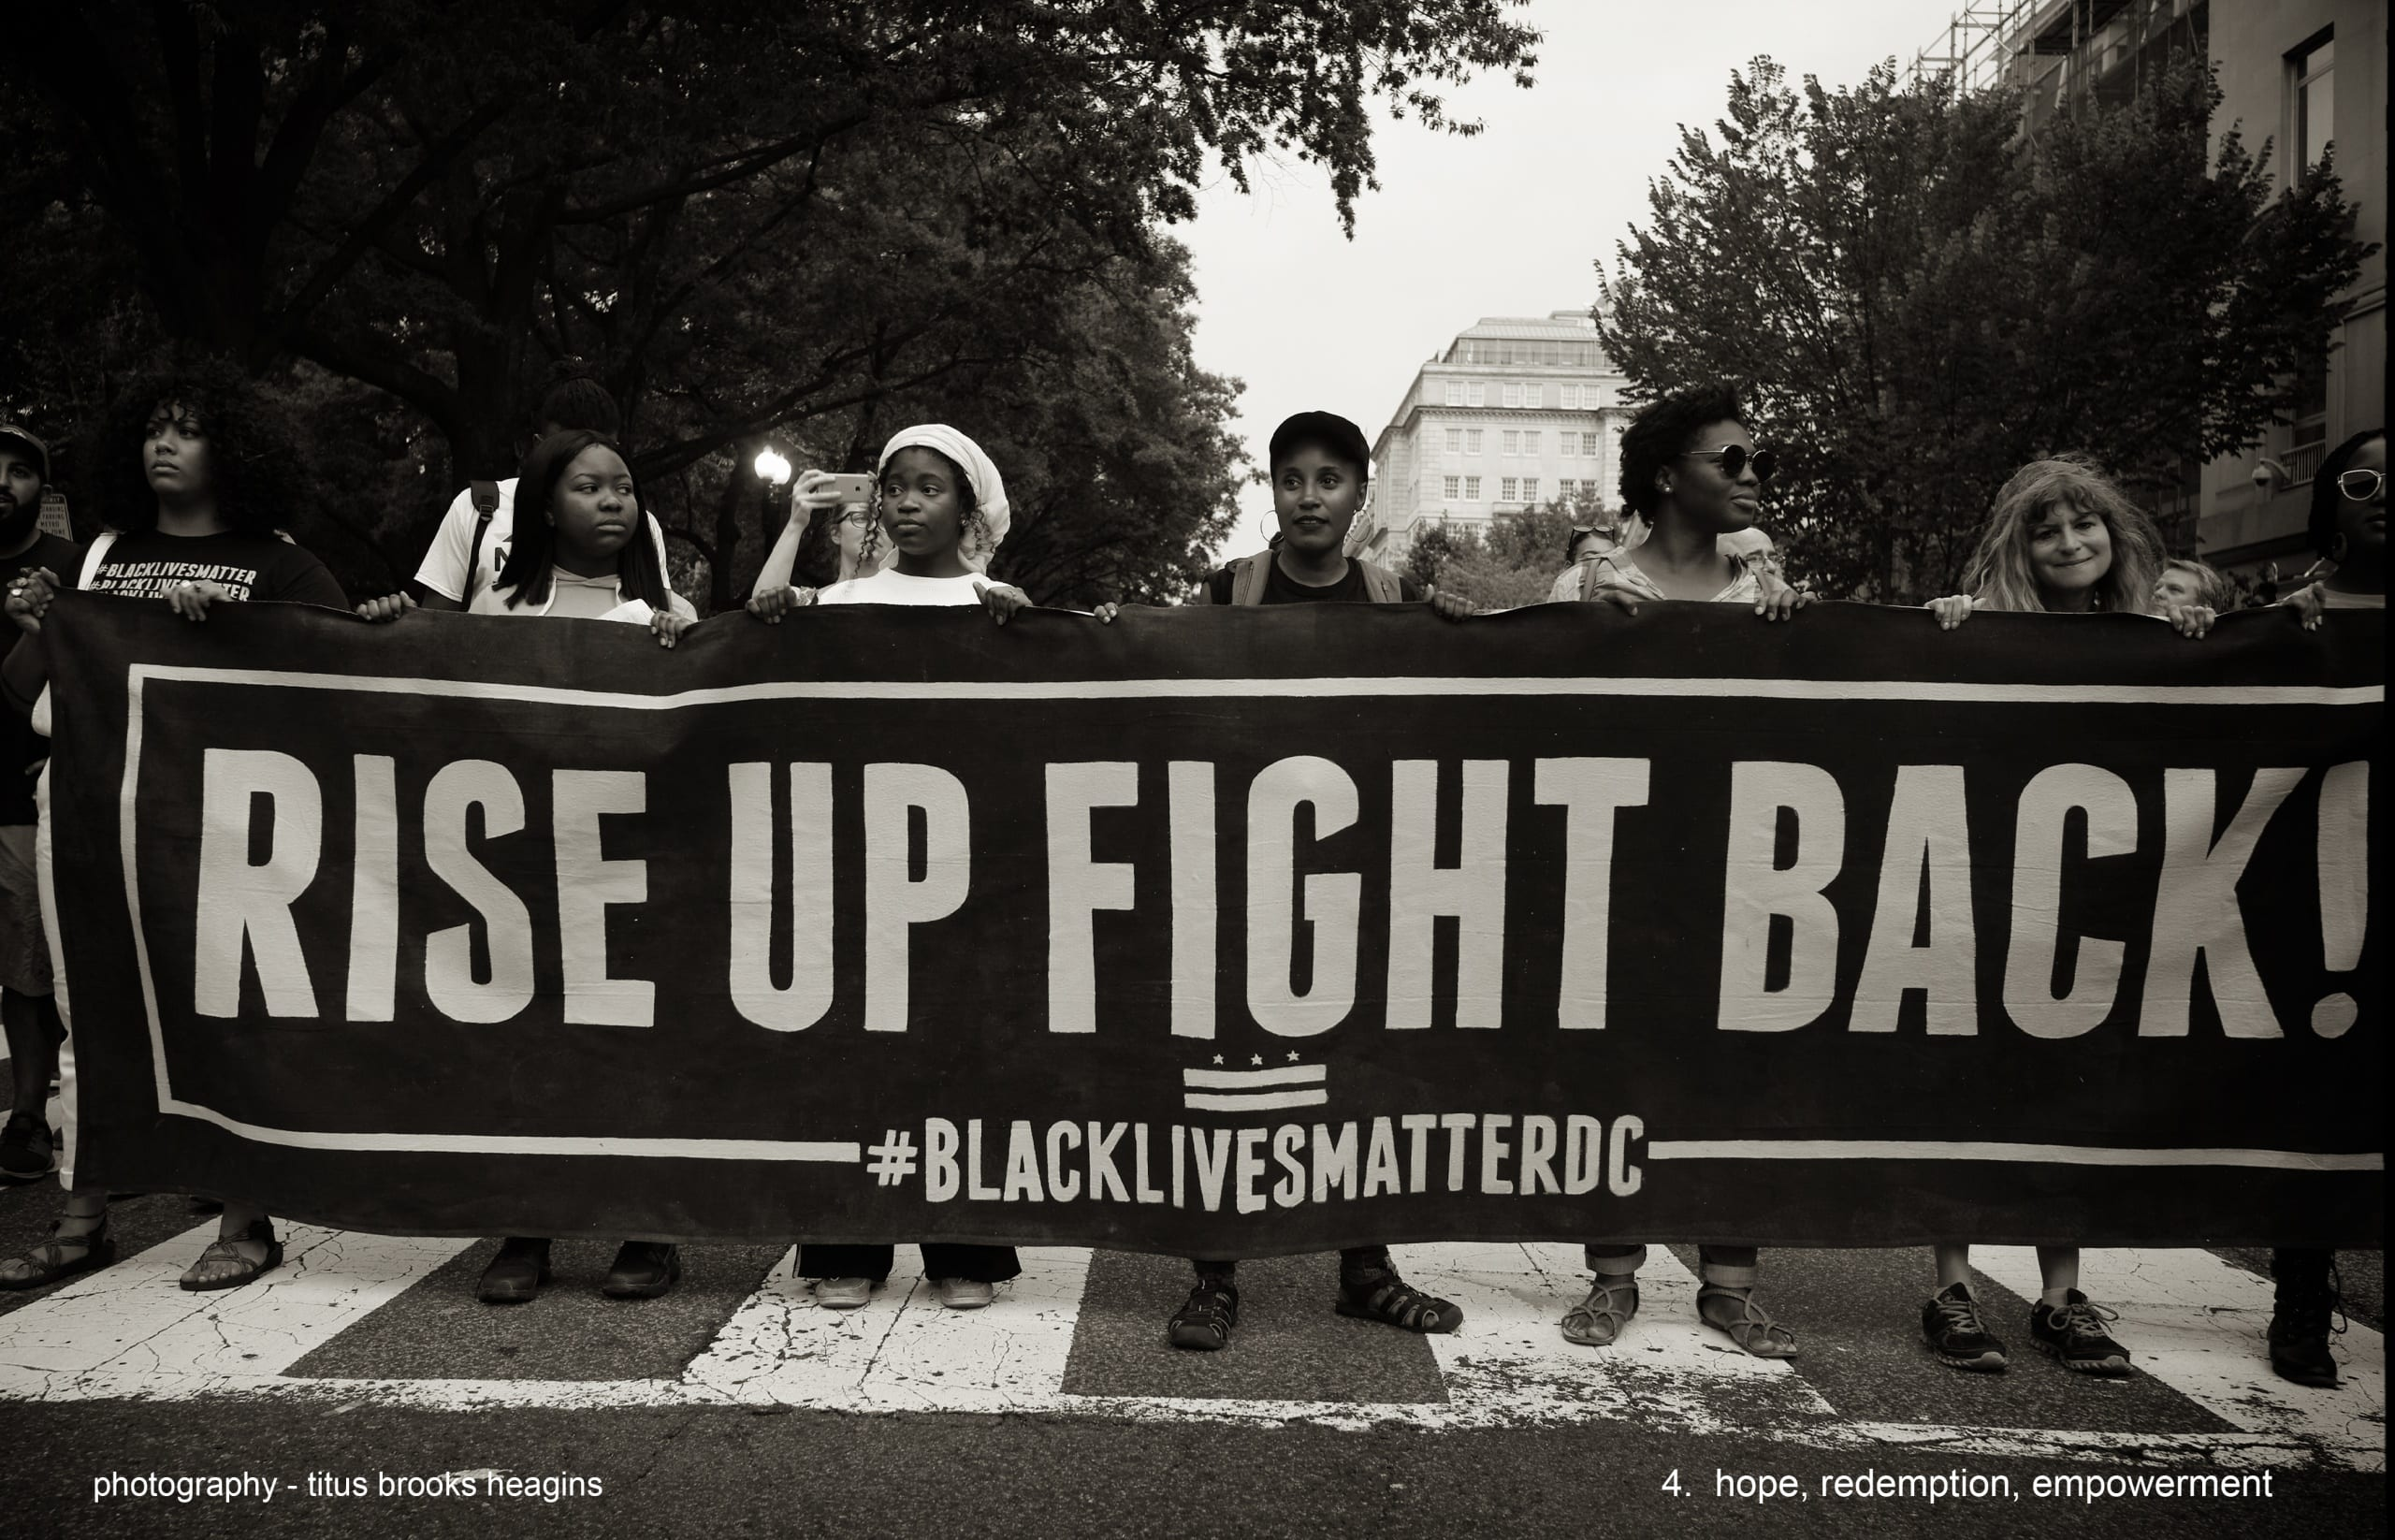 """Black and white photo of a front line of protesters holding a long cloth banner that reads """"Rise Up Fight Back! #BlackLivesMatterDC"""""""